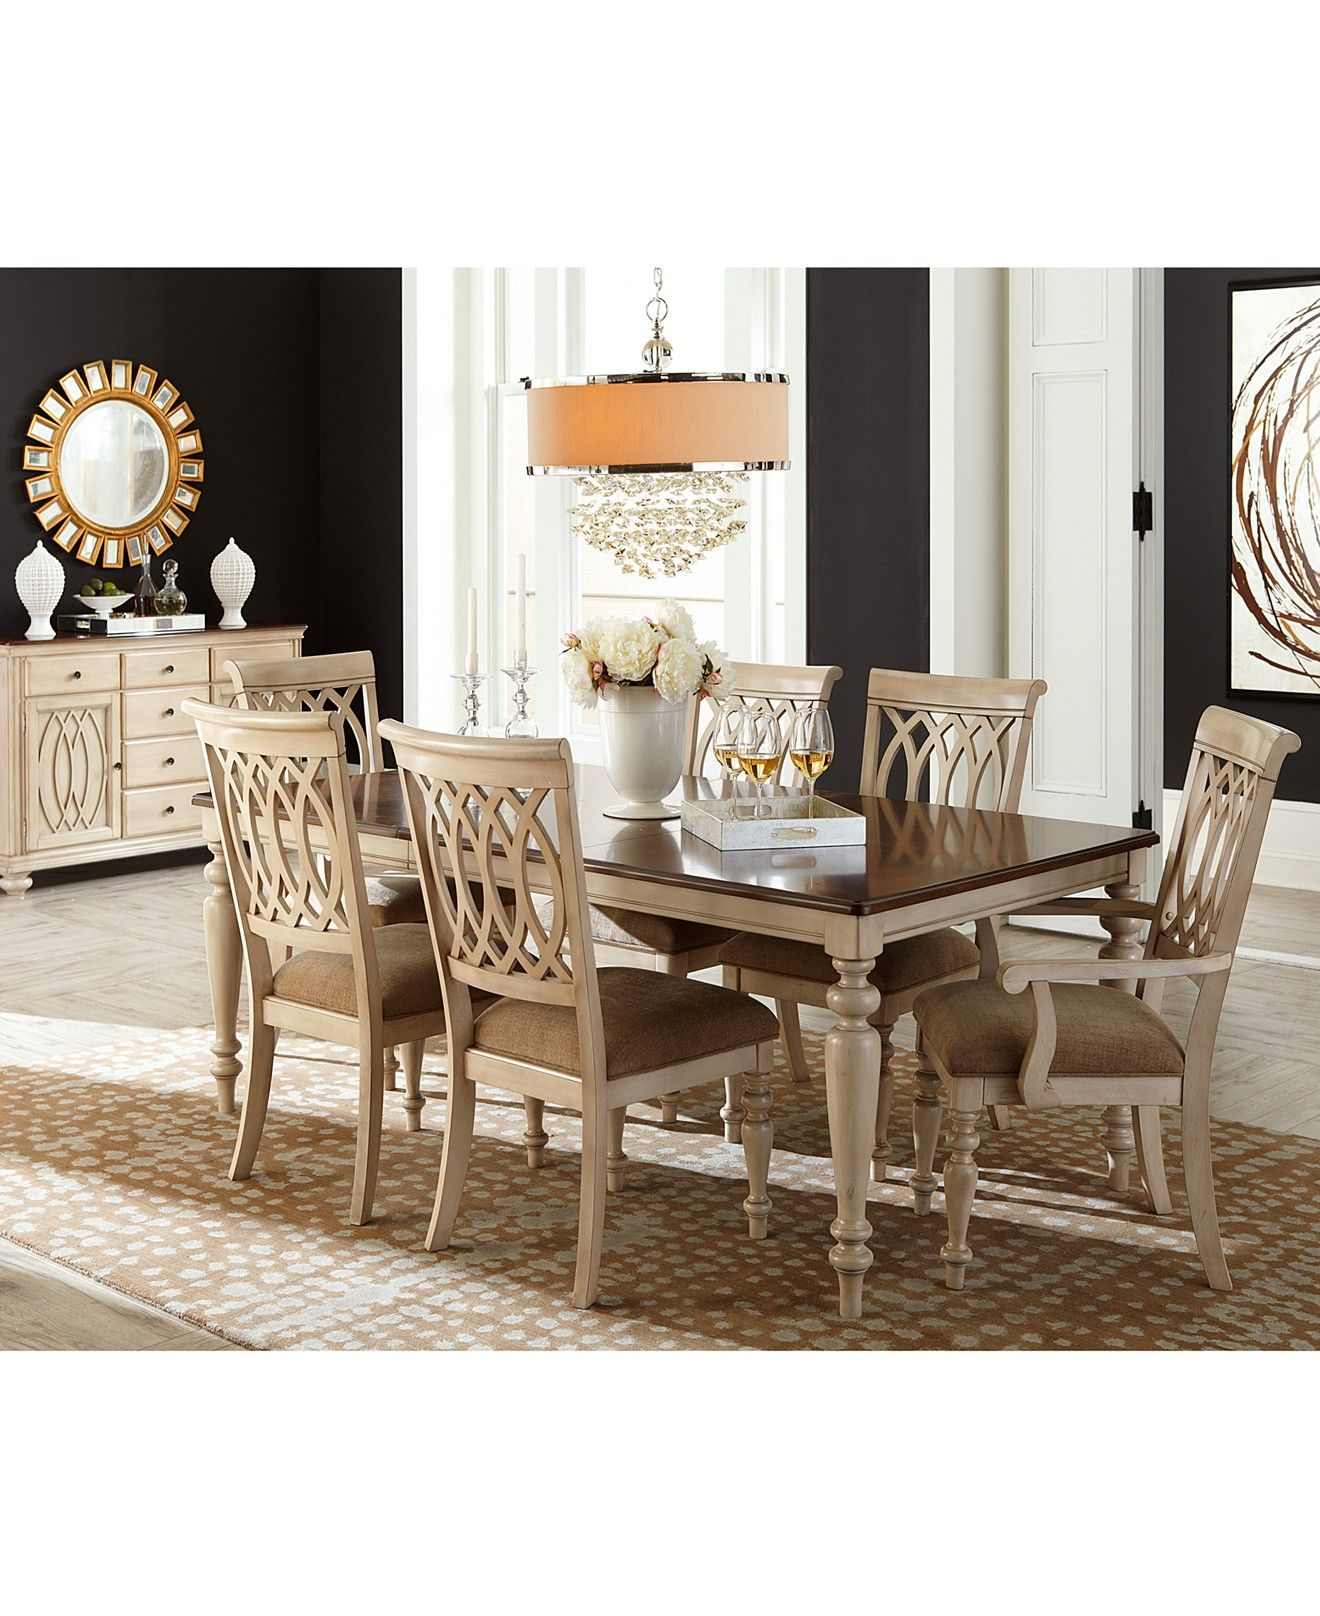 Dovewood Dining Room Furniture Collection Dining Room